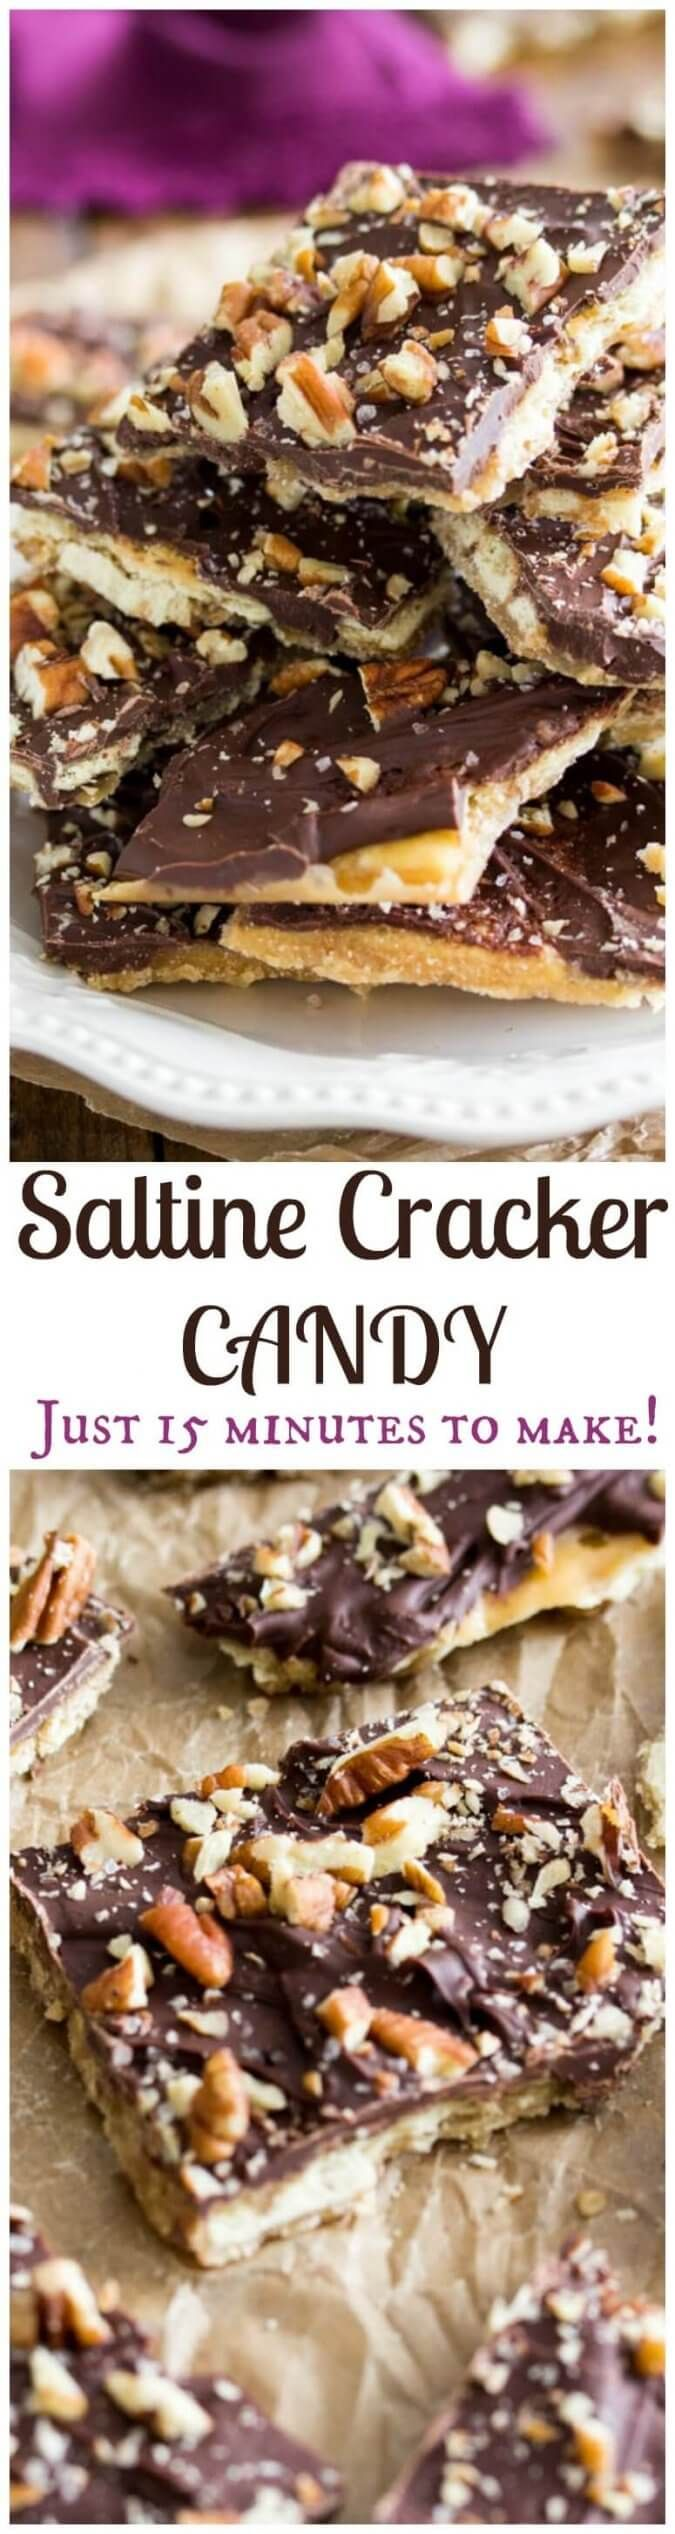 saltine-cracker-candy-takes-just-15-minutes-to-make-sugar-spun-run